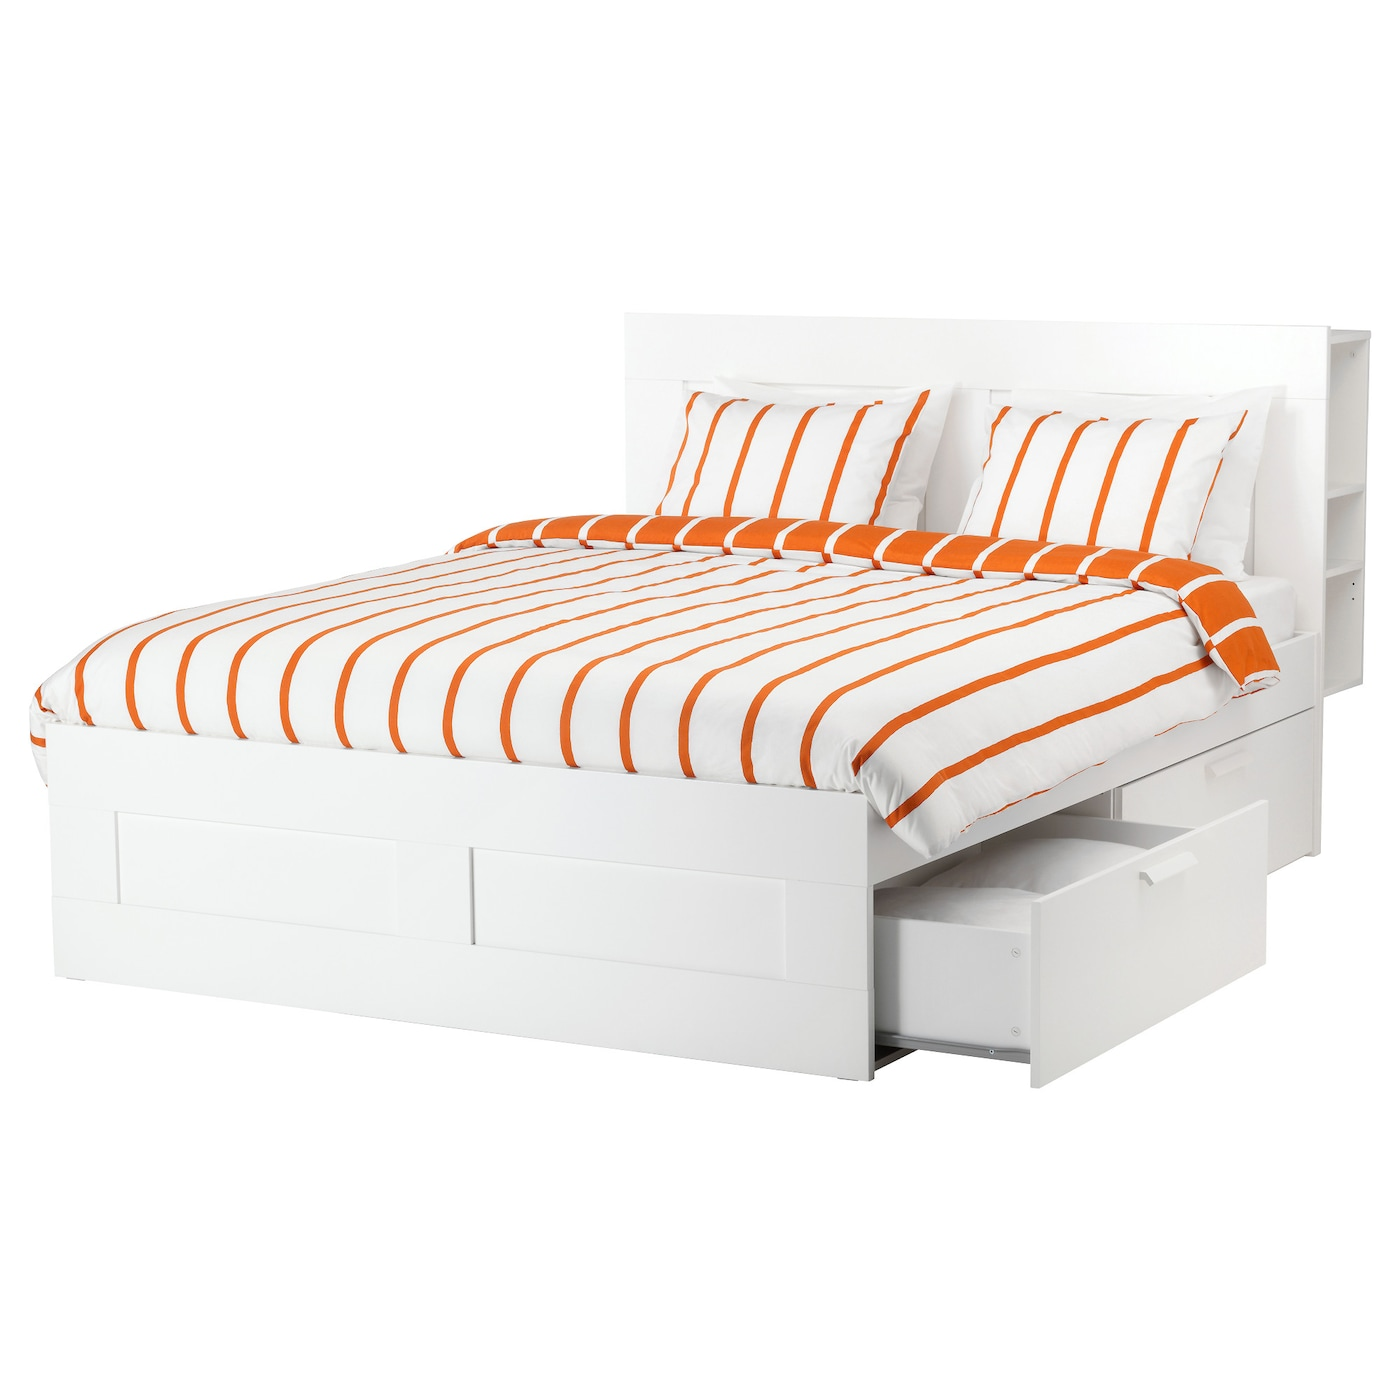 Double & King Size Beds & Bed Frames - IKEA